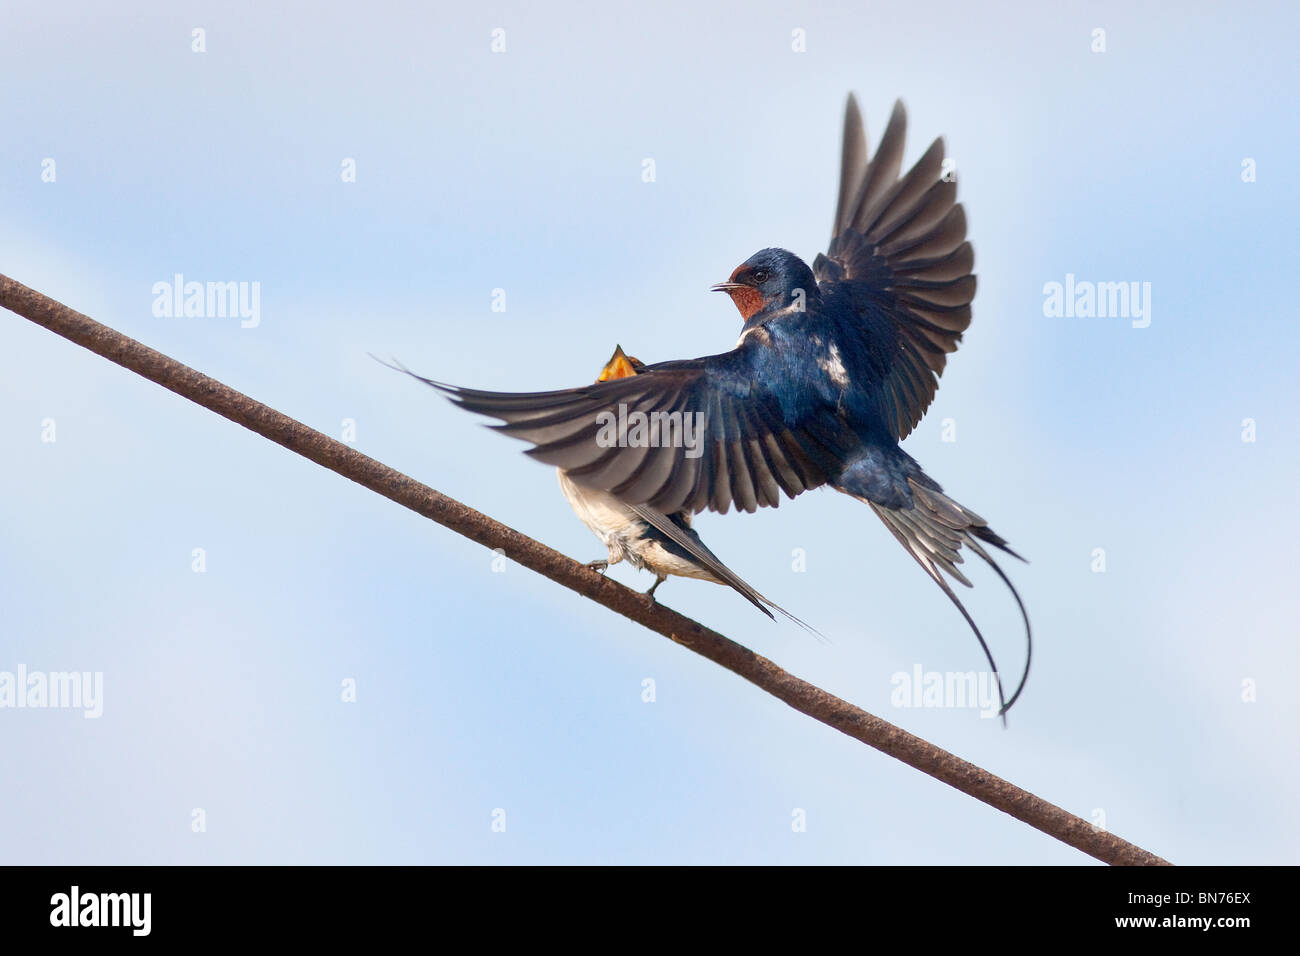 Swallows Hirundo rustica pairing on telephone line - Stock Image